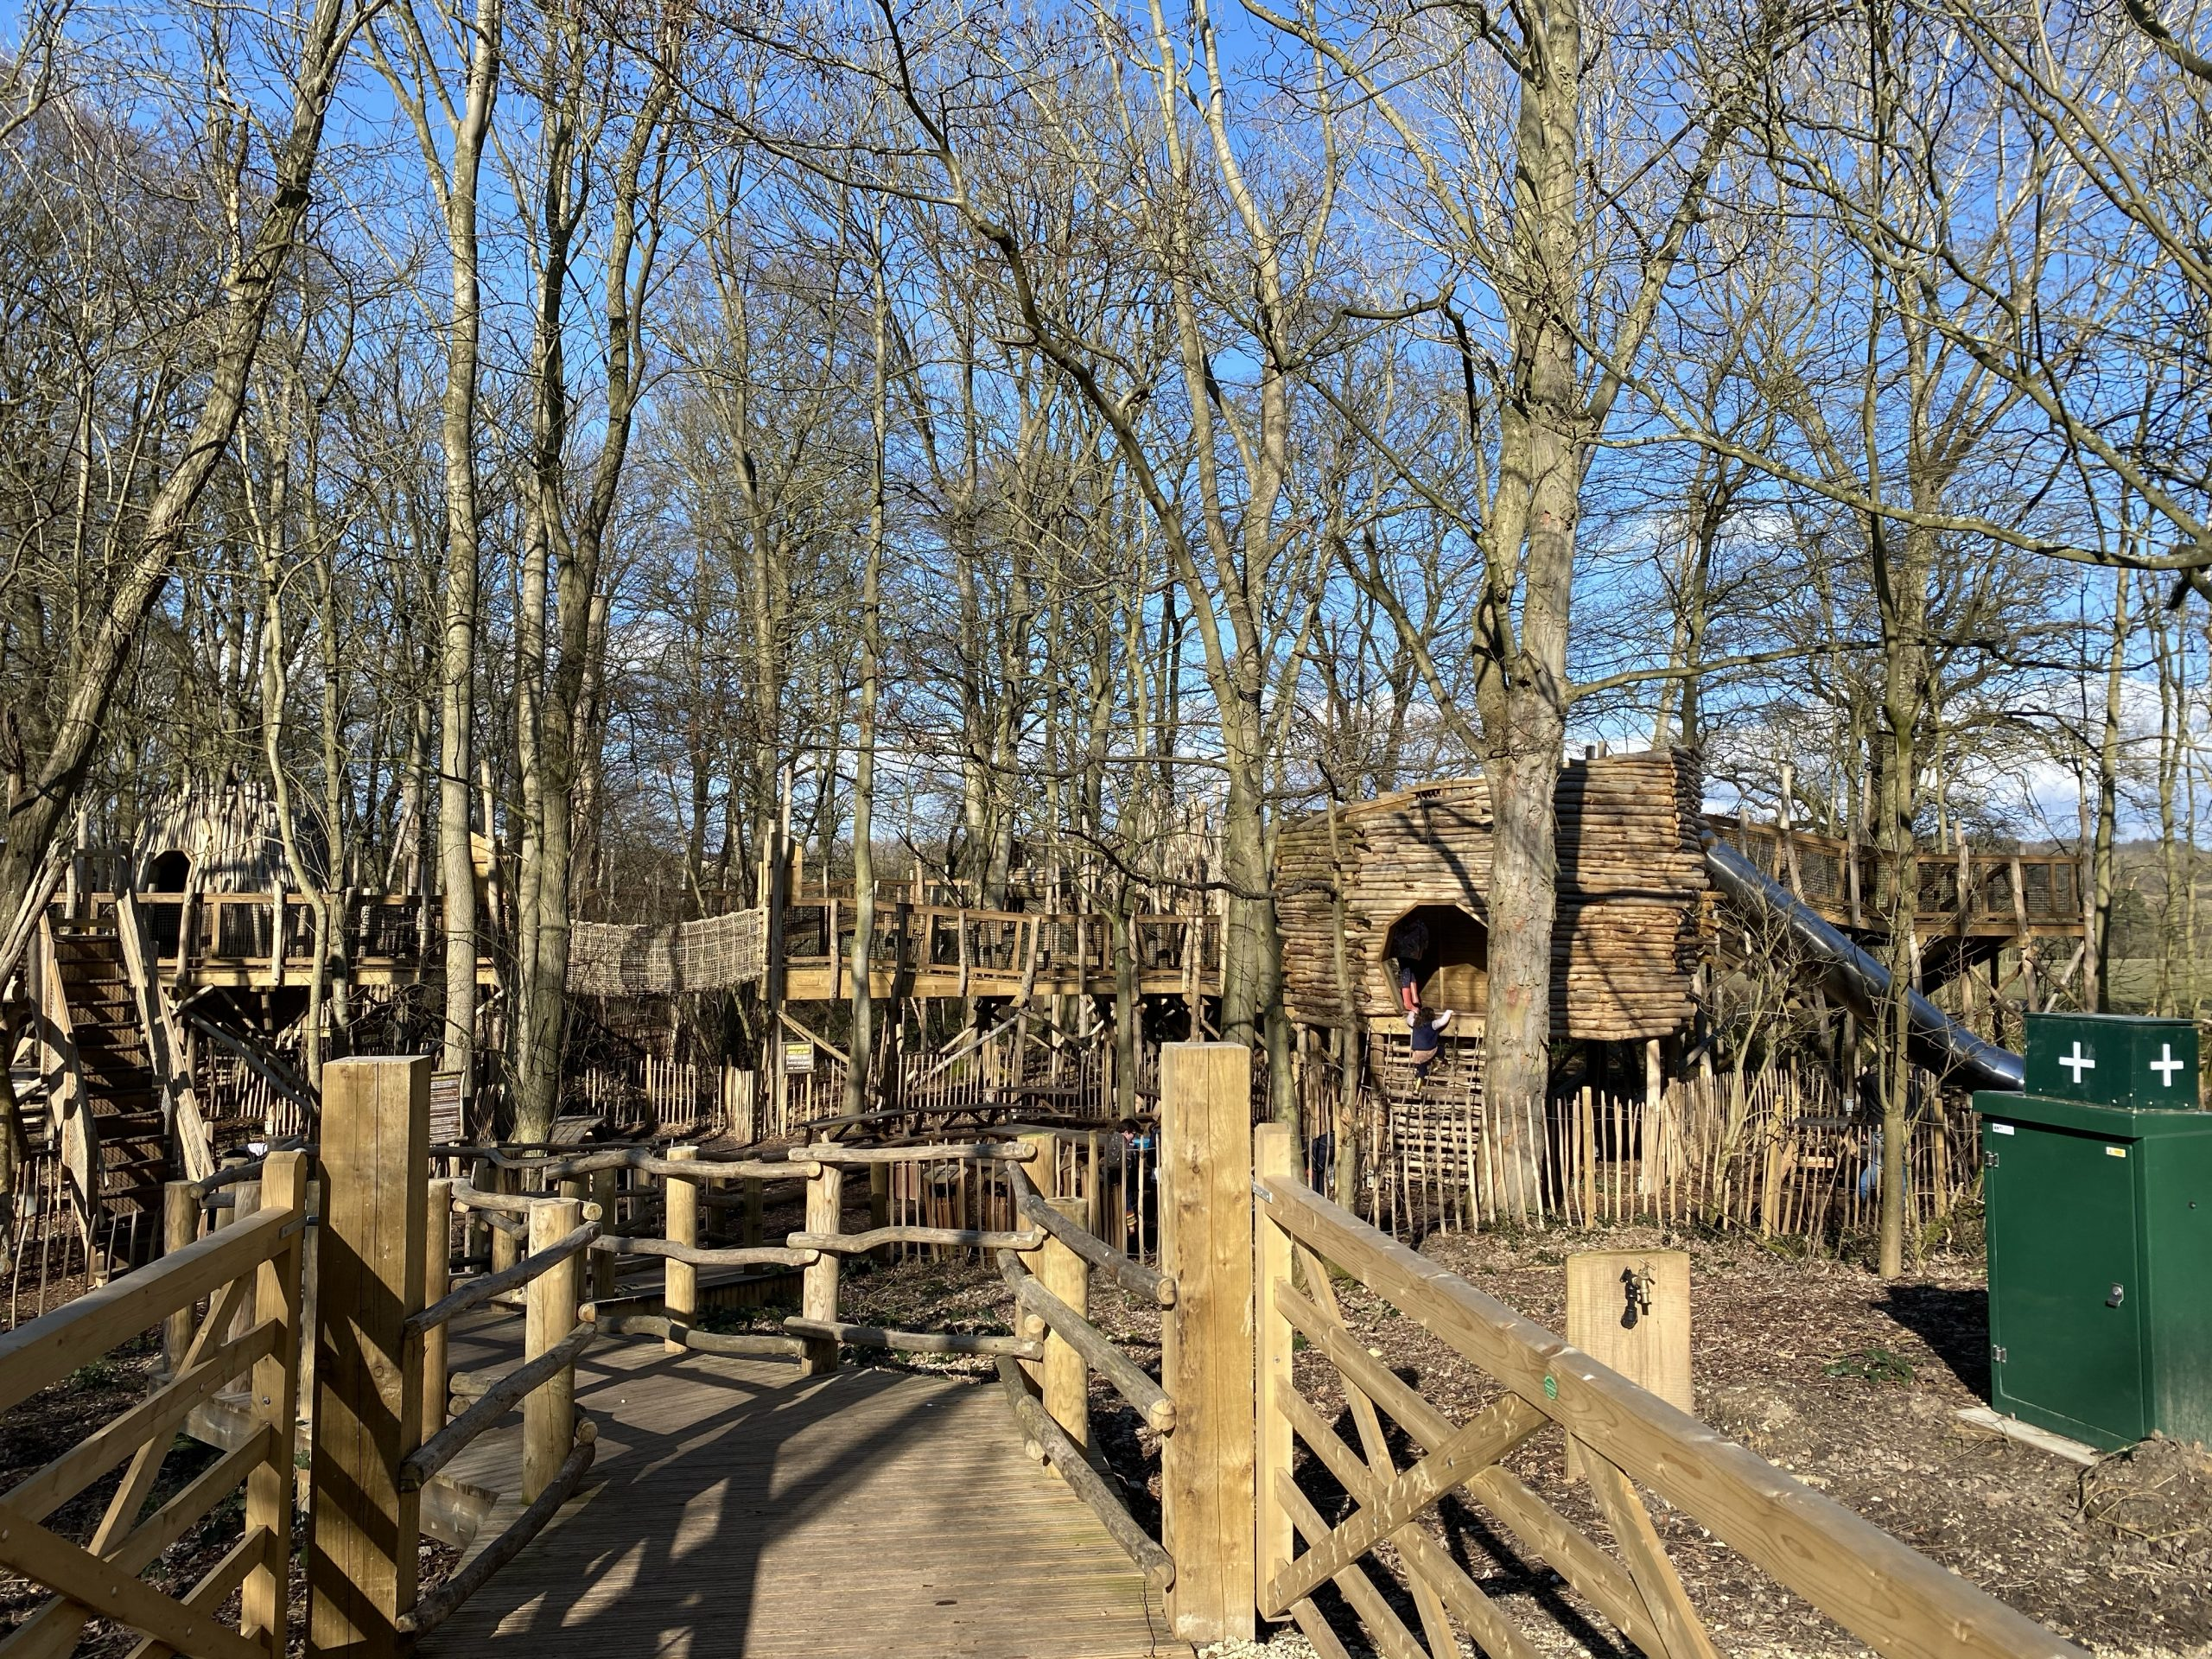 Visiting Castle Howard Skelf Island Adventure playground